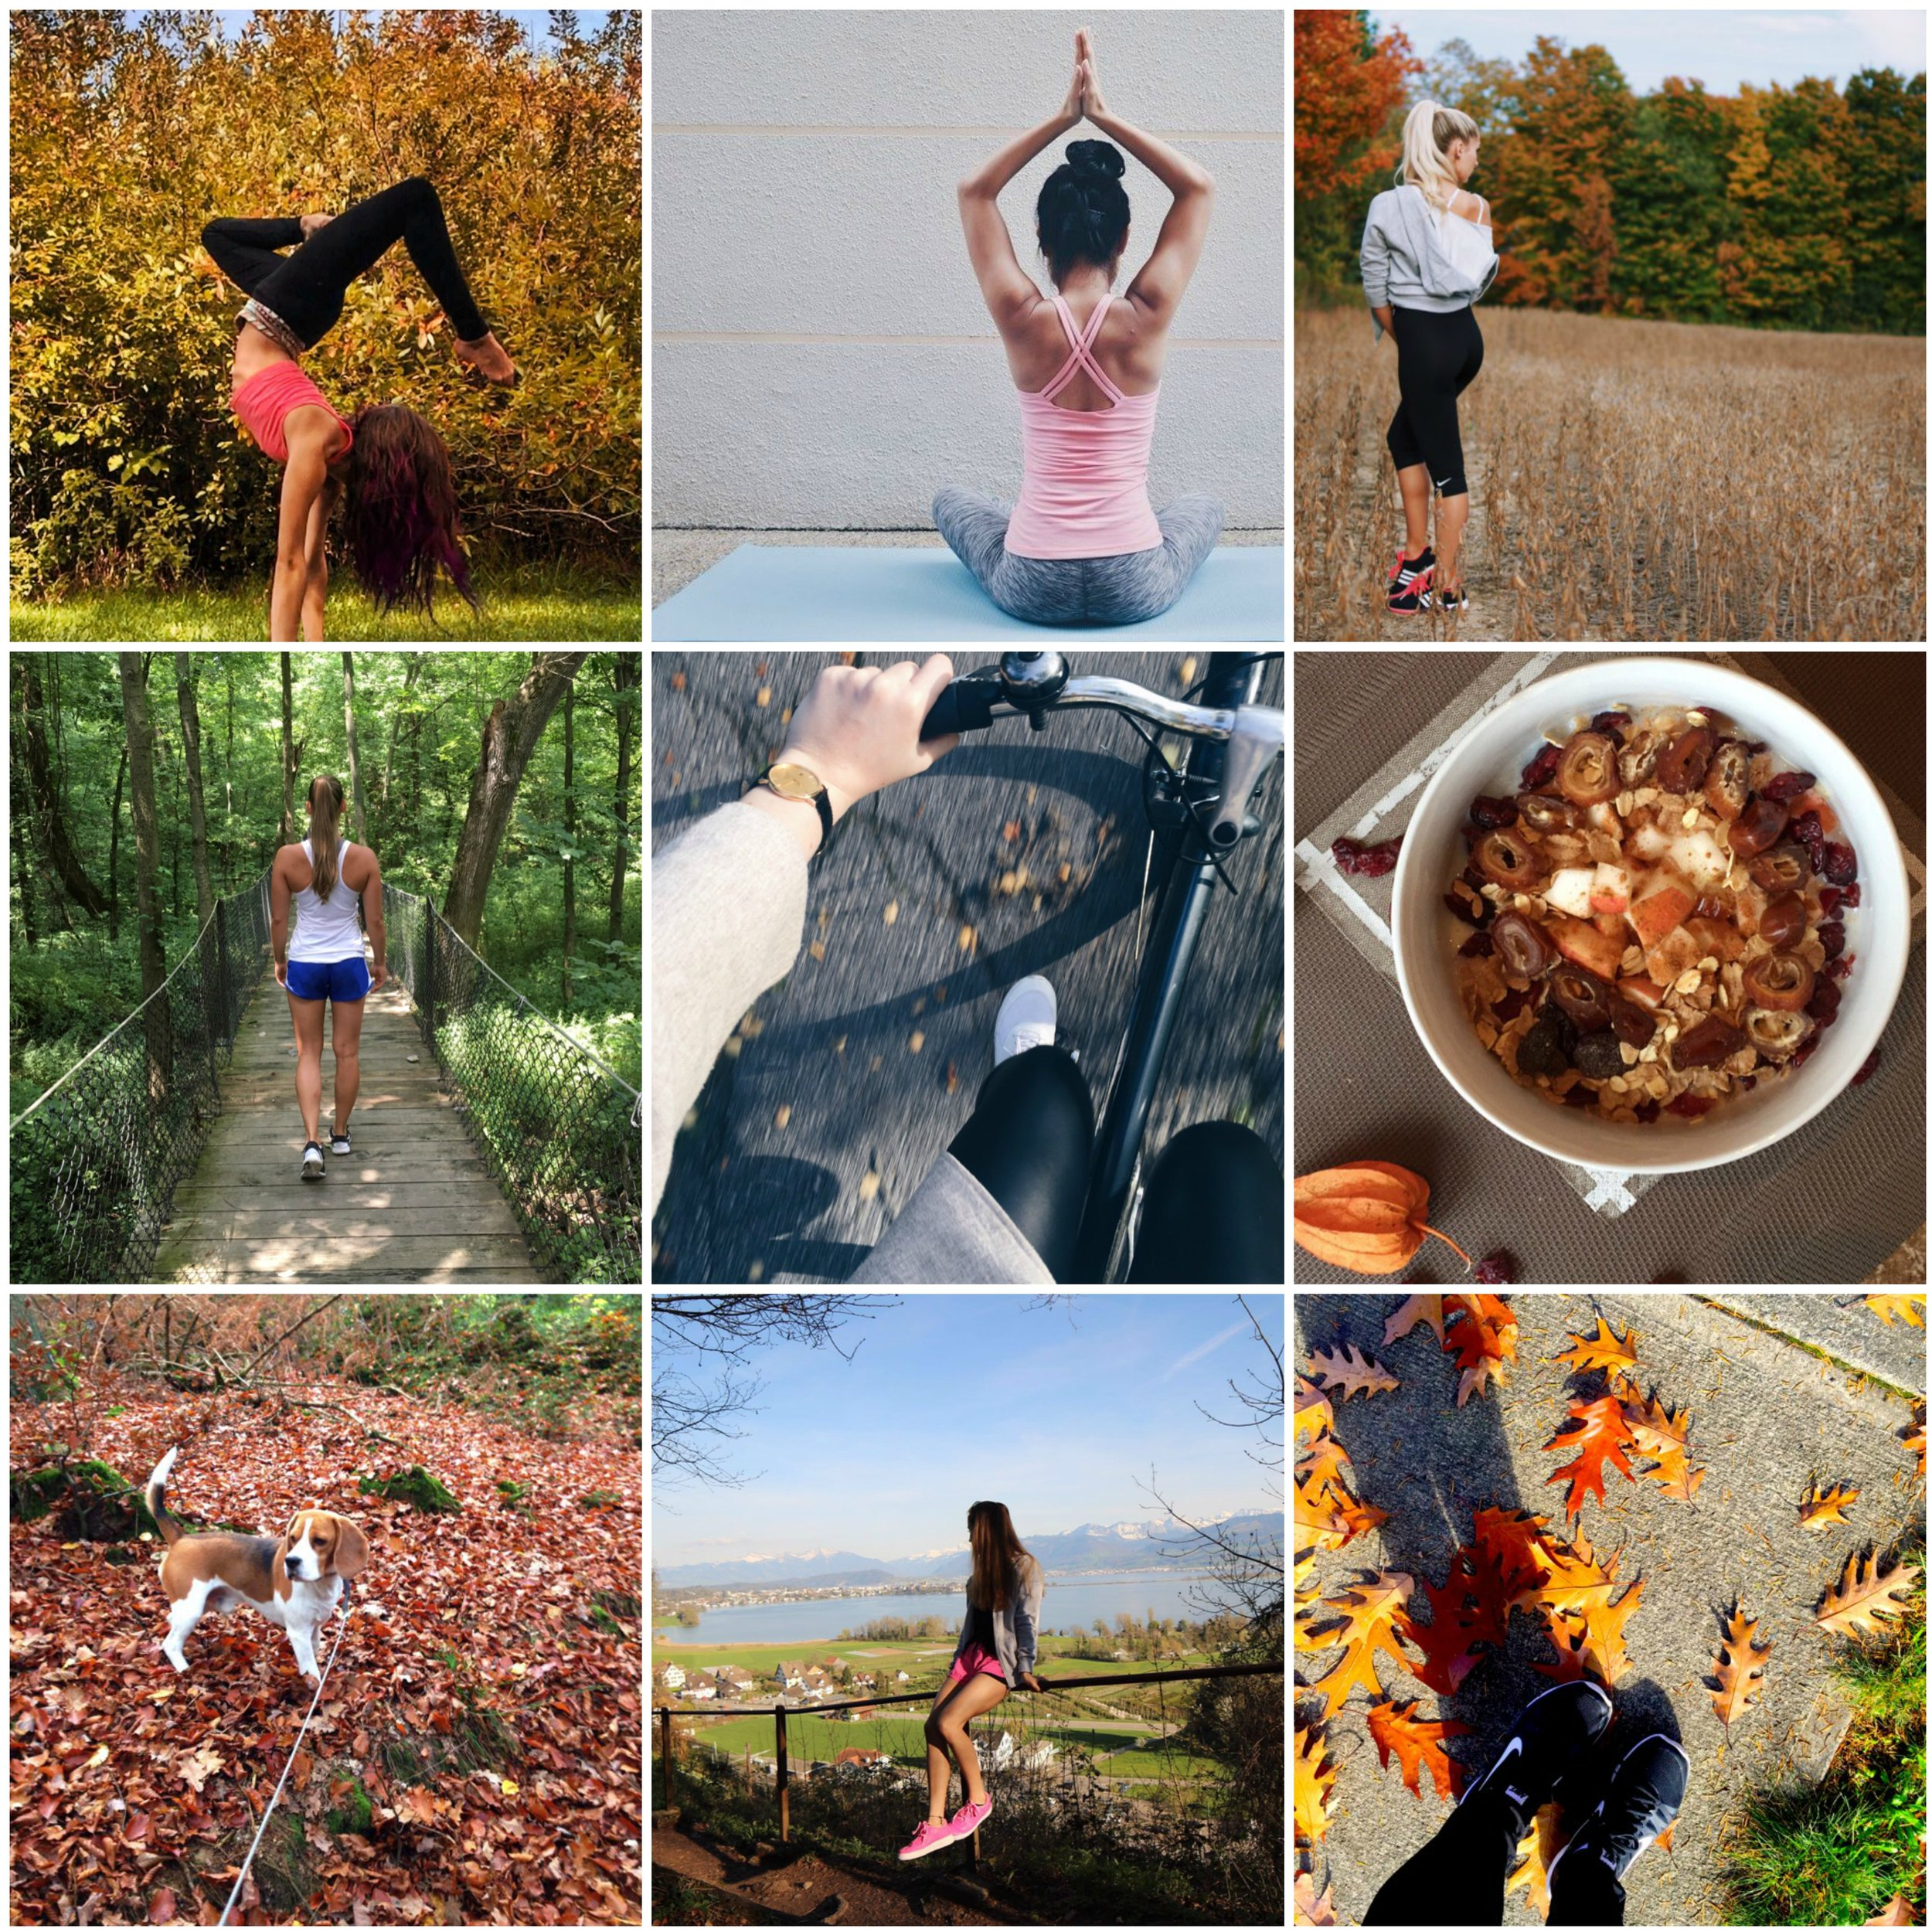 We love seeing #OnTheGoOctober inspiration from our PumpUp community members! From l-r: @meowemy, @fitgirlsdoitbetter, @thenewalexandra, @nina_1911, @annaves, @skyblue1, @juieedo, @fitgirls, and @daniellenicole.